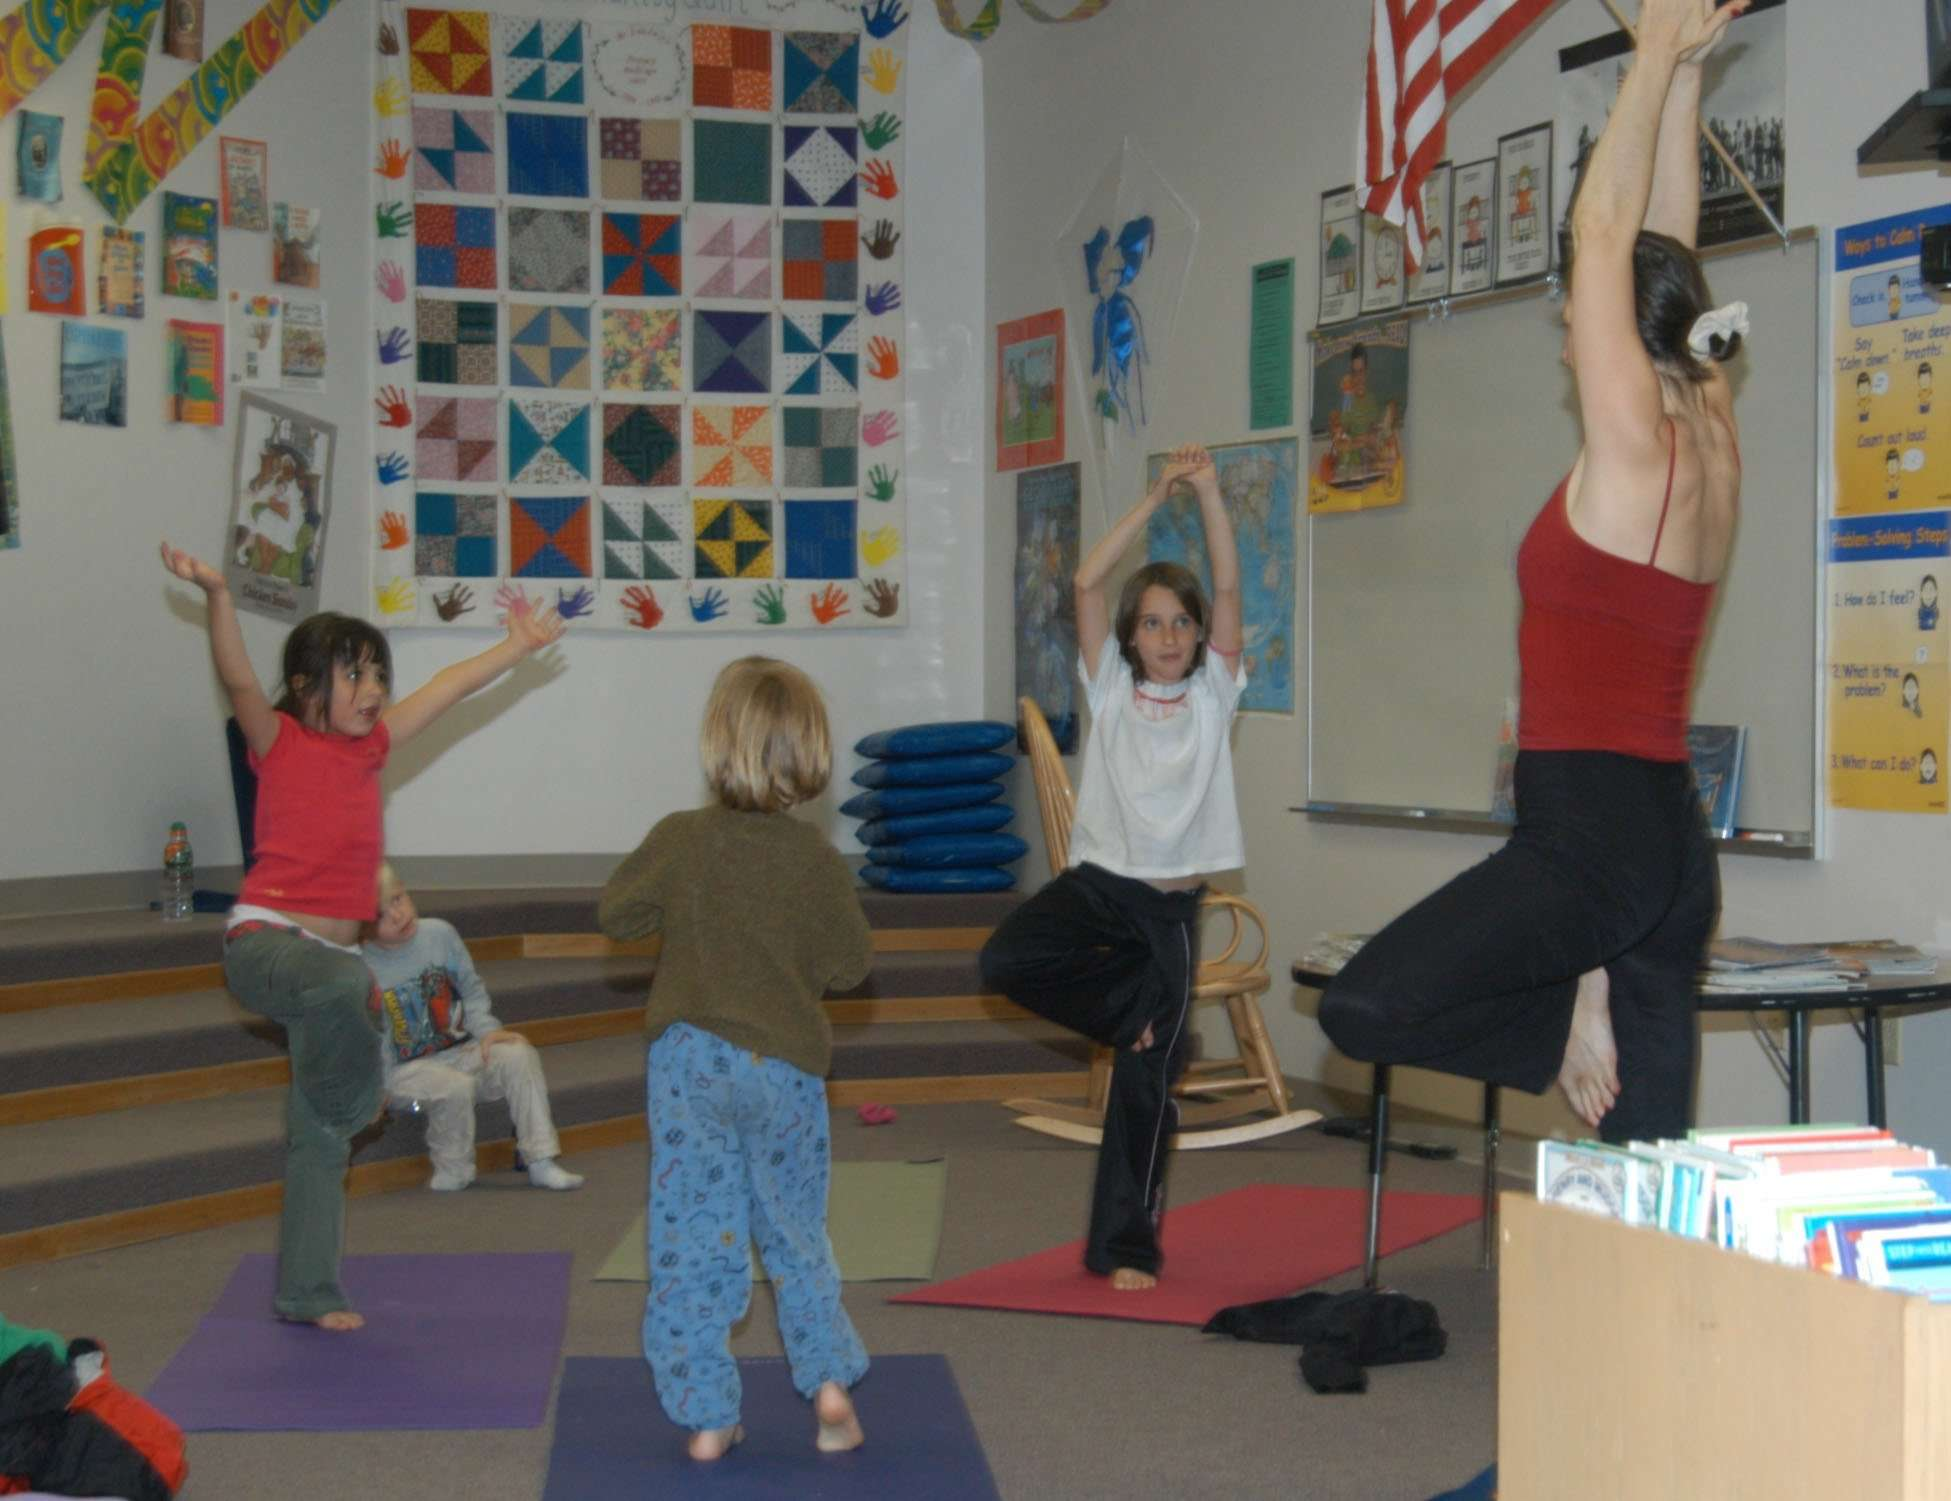 Storytime Yoga® in the Library after school program, Shelton Elementary Golden, Colorado in 2005